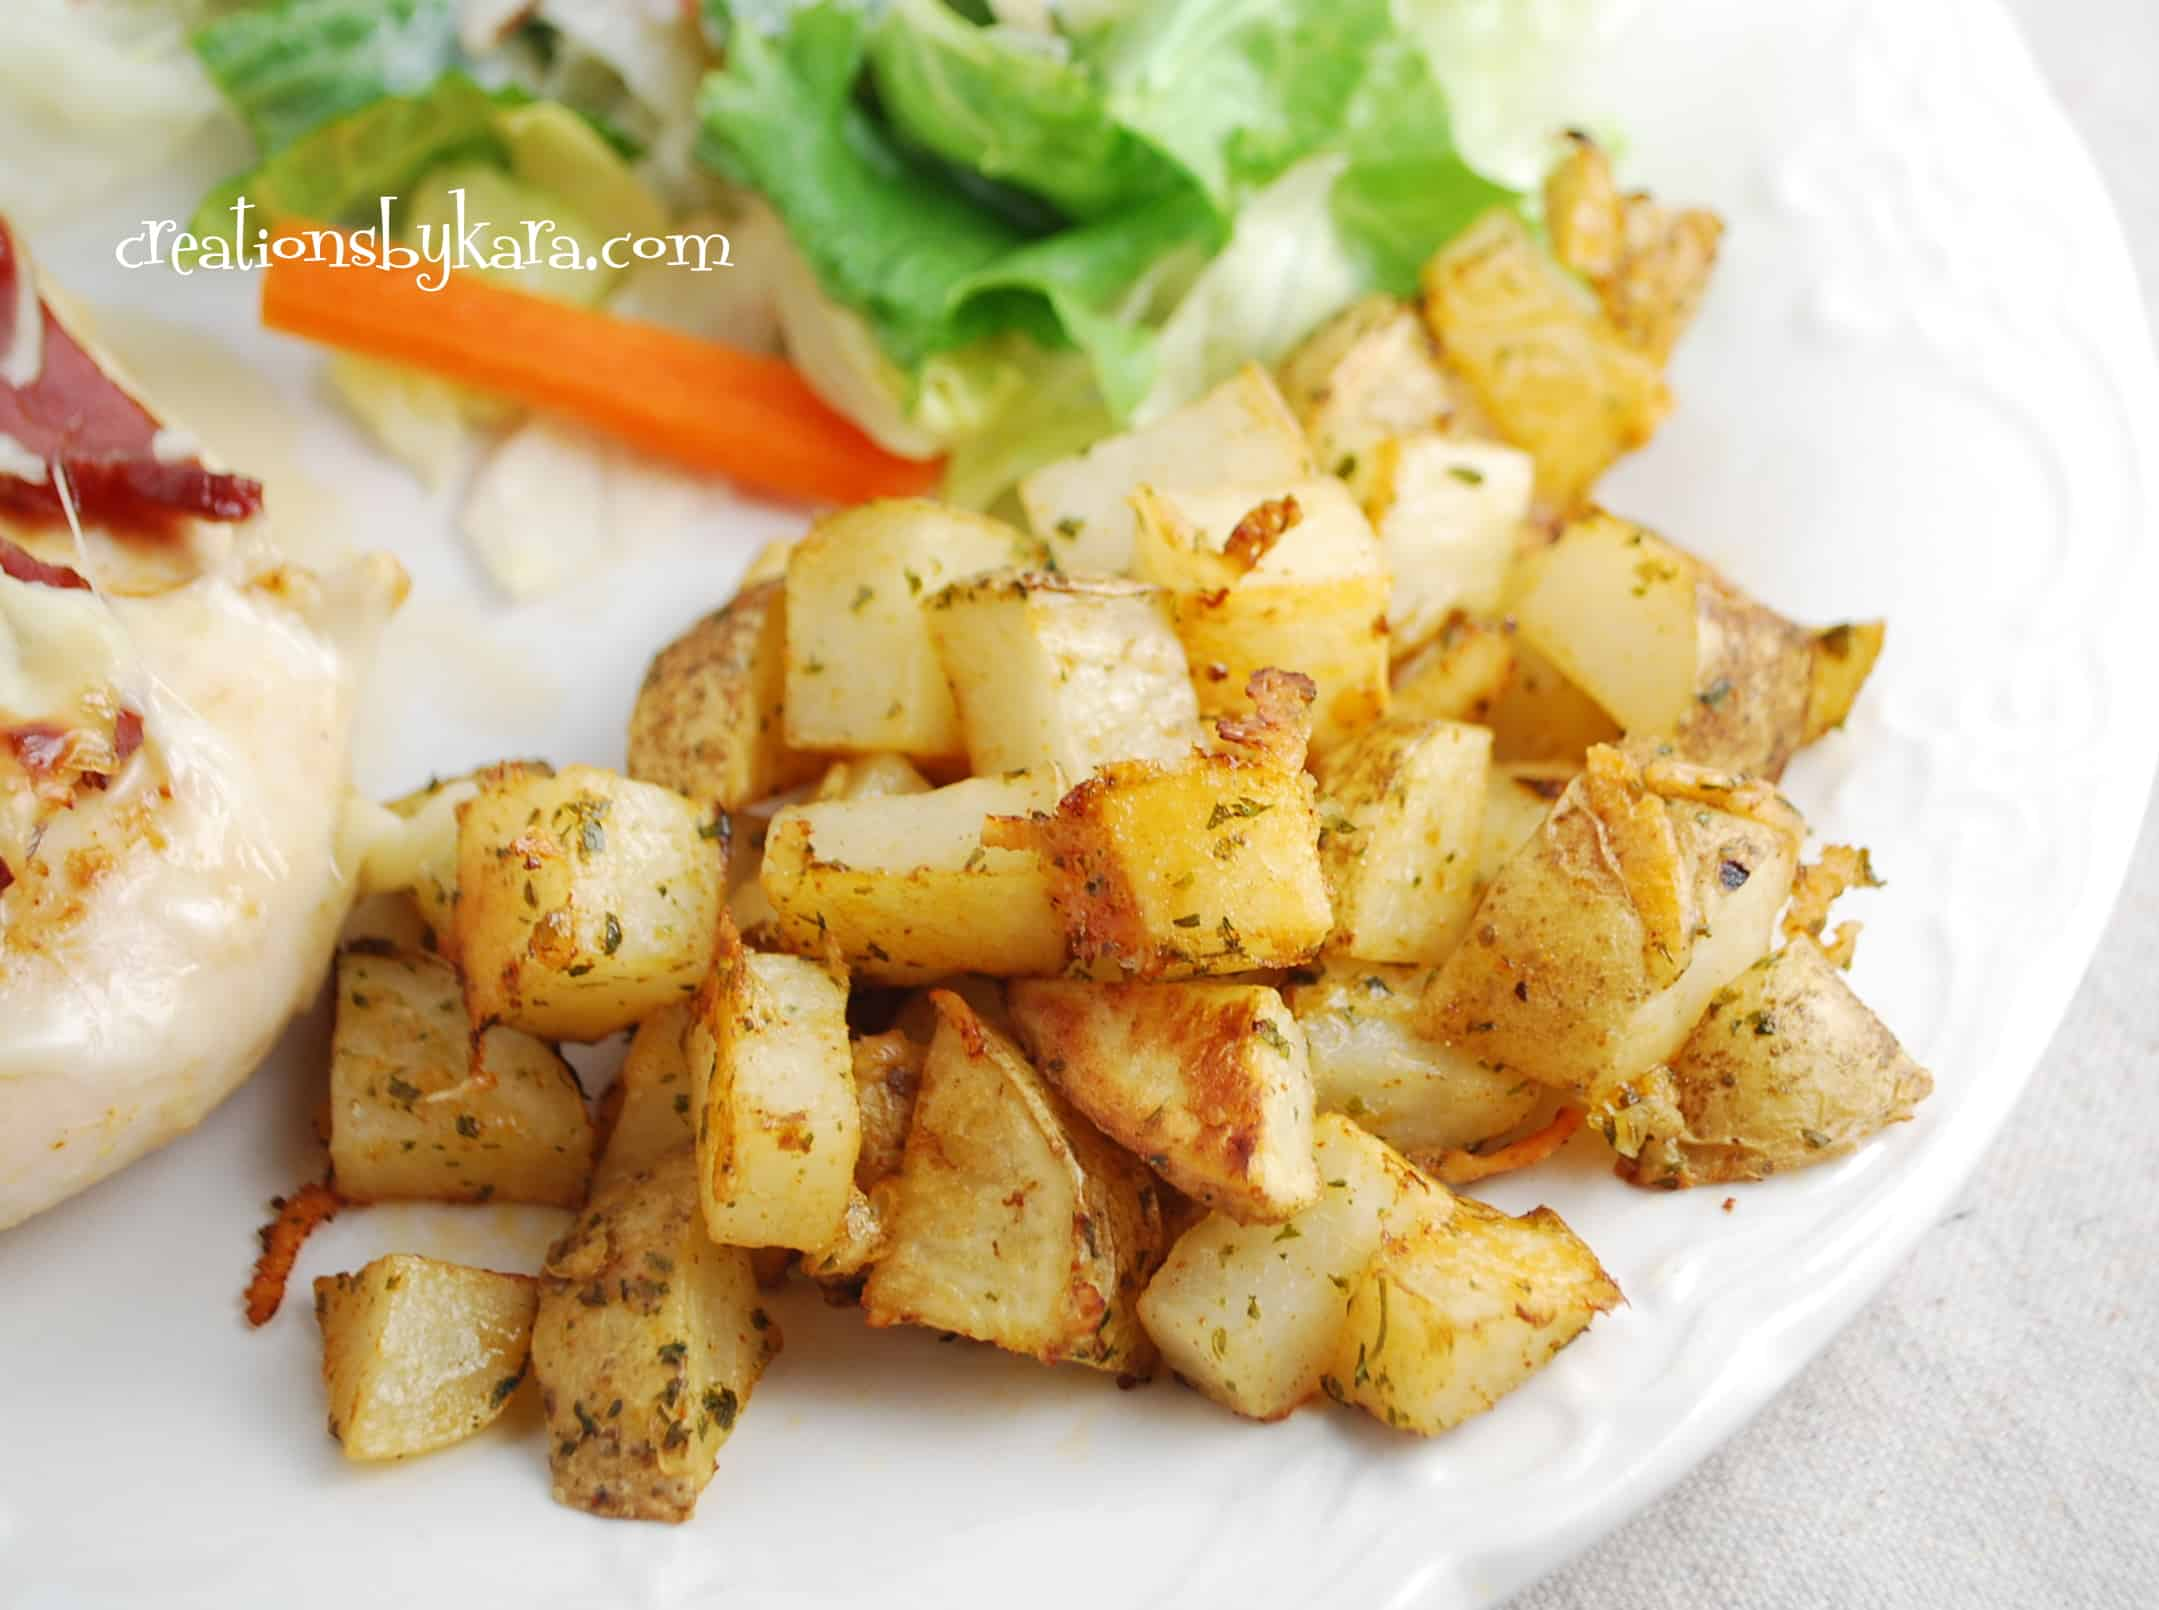 parmesan-roasted-potatoes, recipe